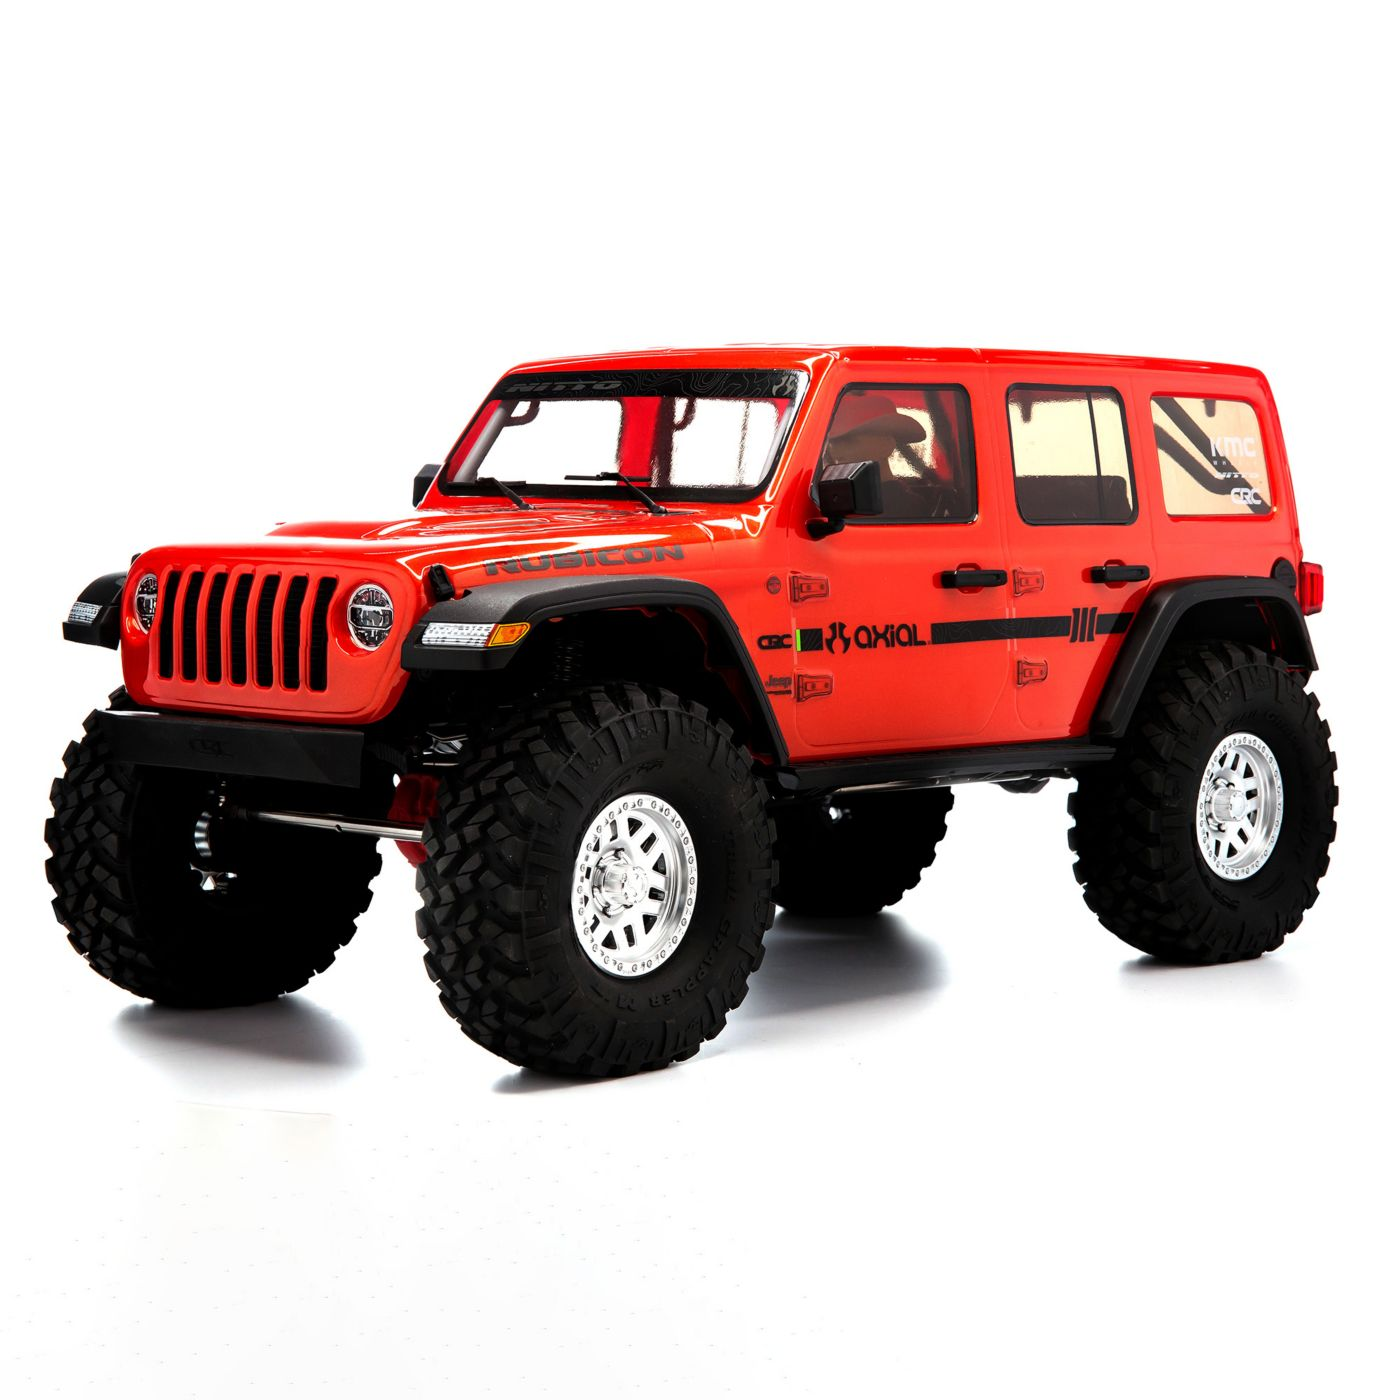 "Axial Racing 1/10 SCX10 III Jeep JLU Wrangler with Portals RTR, Orange <font color=""red""><b>(PREORDER)</b></font>"